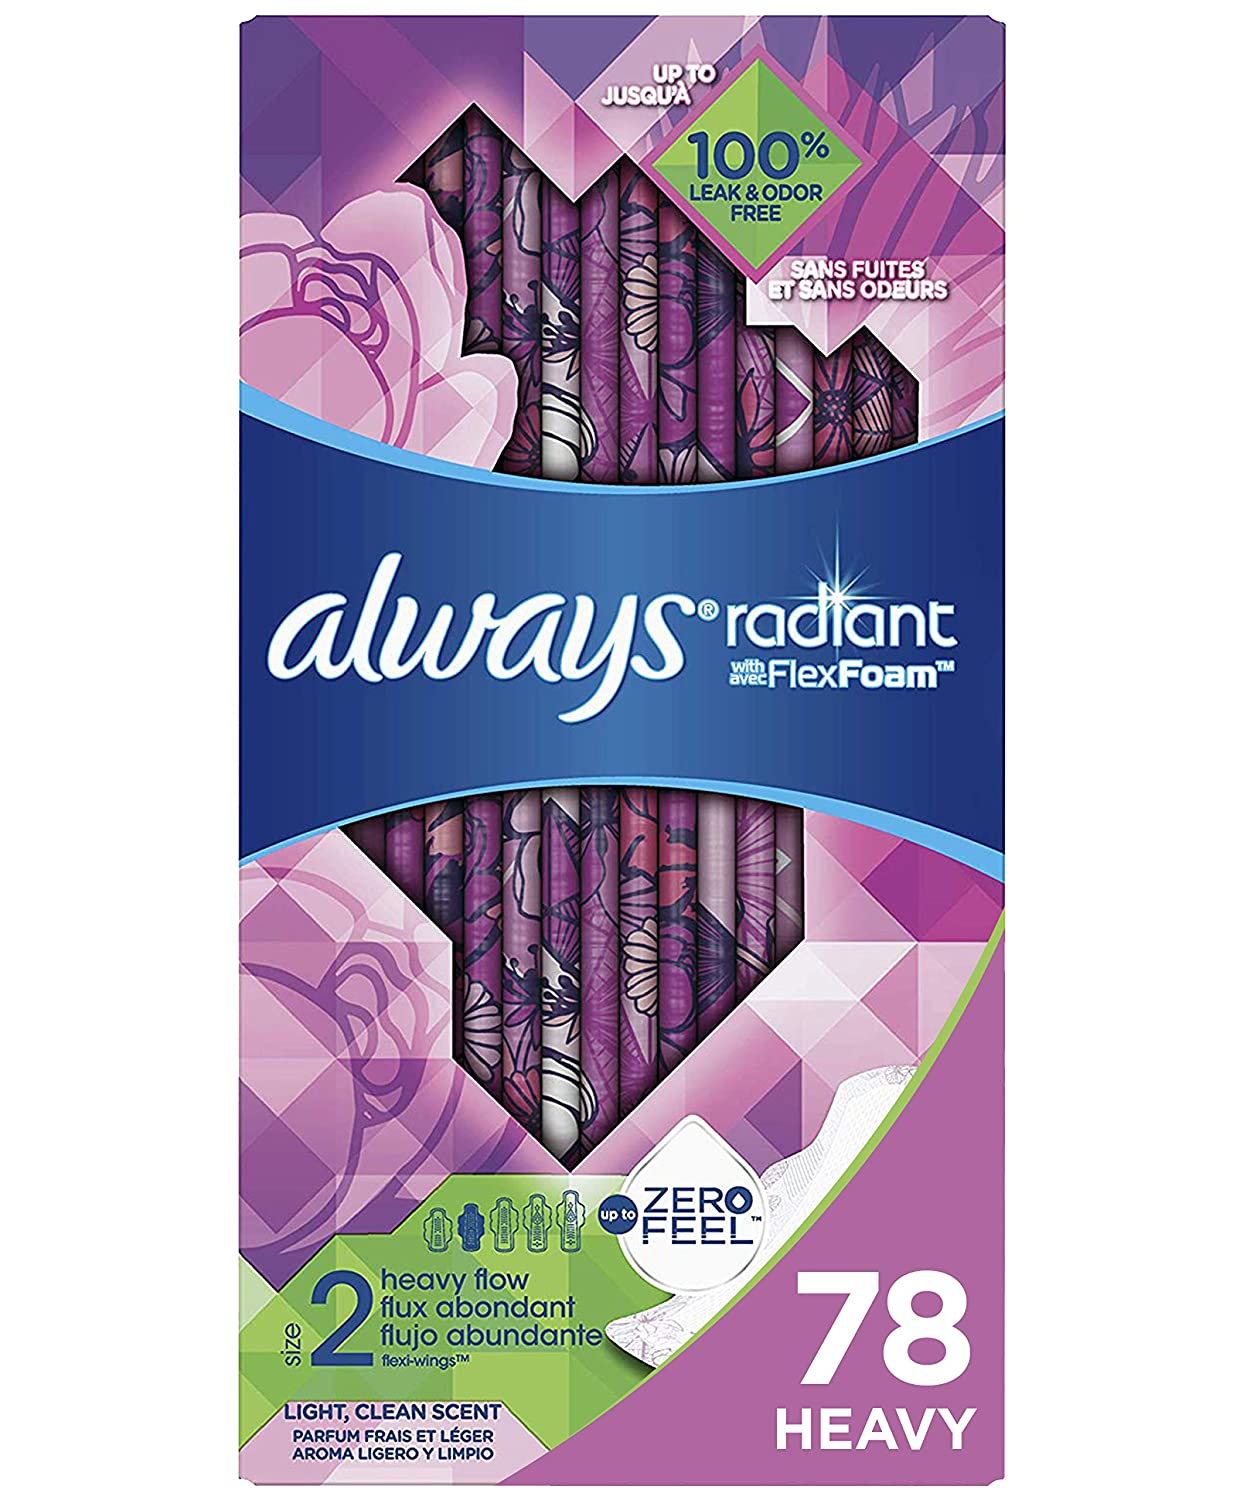 Always Radiant Feminine Pads for Women, Size 2, 78 Count, Heavy Flow Absorbency, with Flexfoam Wings, Light Clean Scent, 26 Count, Pack of 3 - 78Count Total)